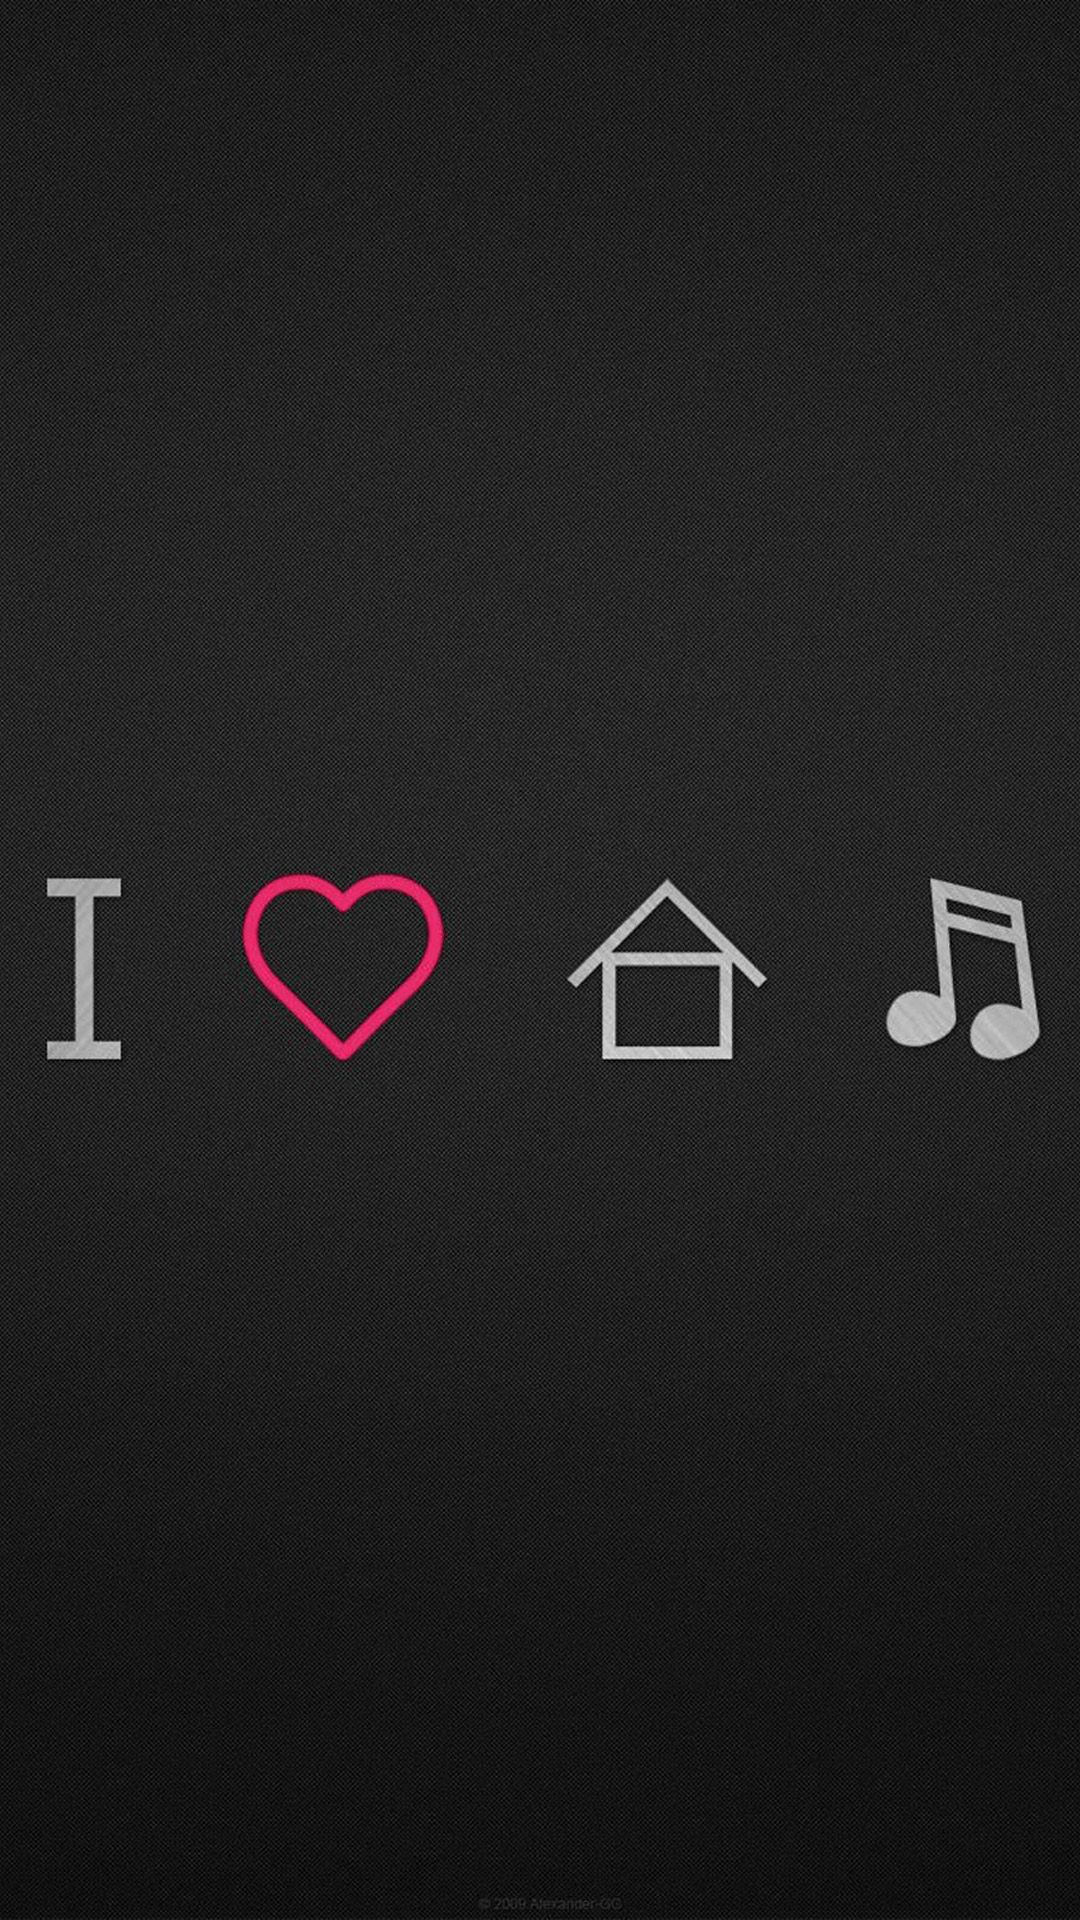 Music Iphone Wallpapers Top Free Music Iphone Backgrounds Wallpaperaccess